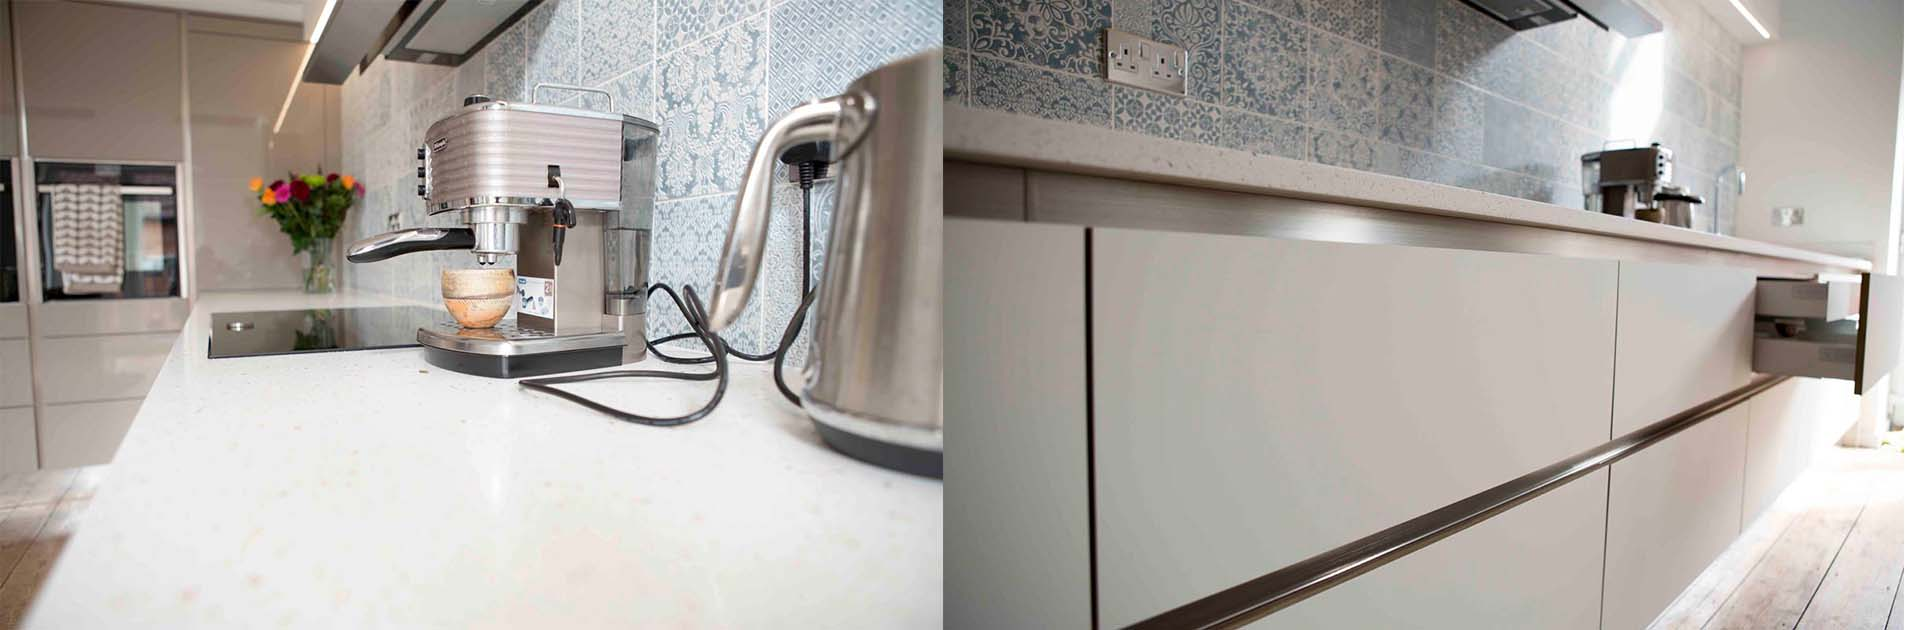 Kitchen case study: hob on white worktop and sleek handle-less kitchen drawer units